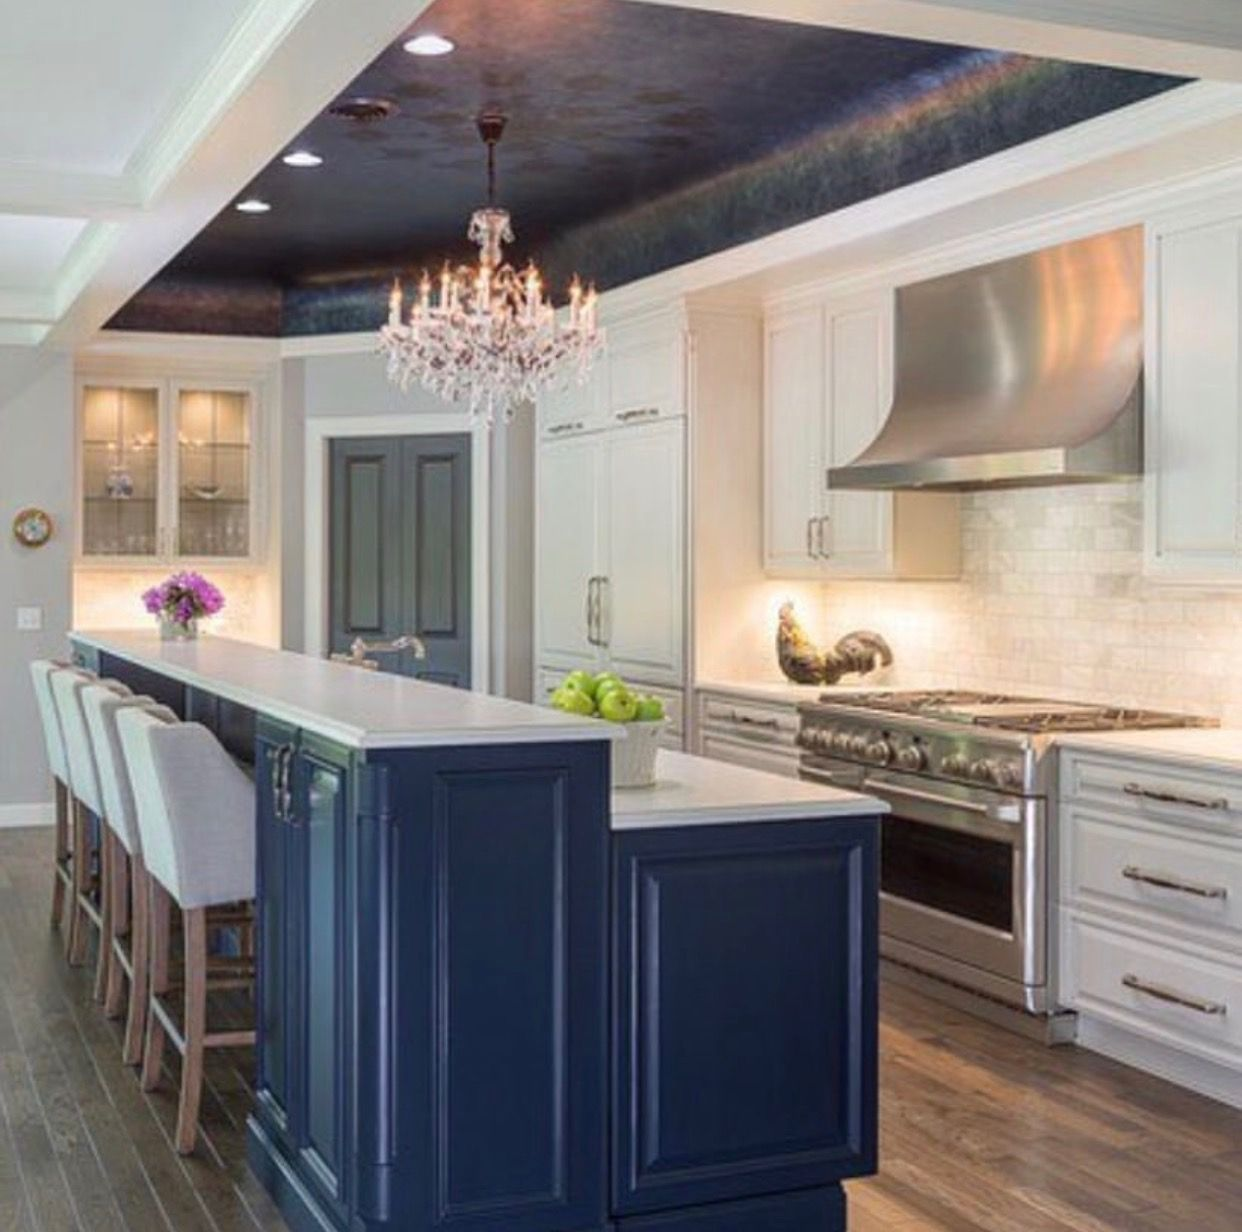 Modernized country kitchen | Home decor, Simple house ...